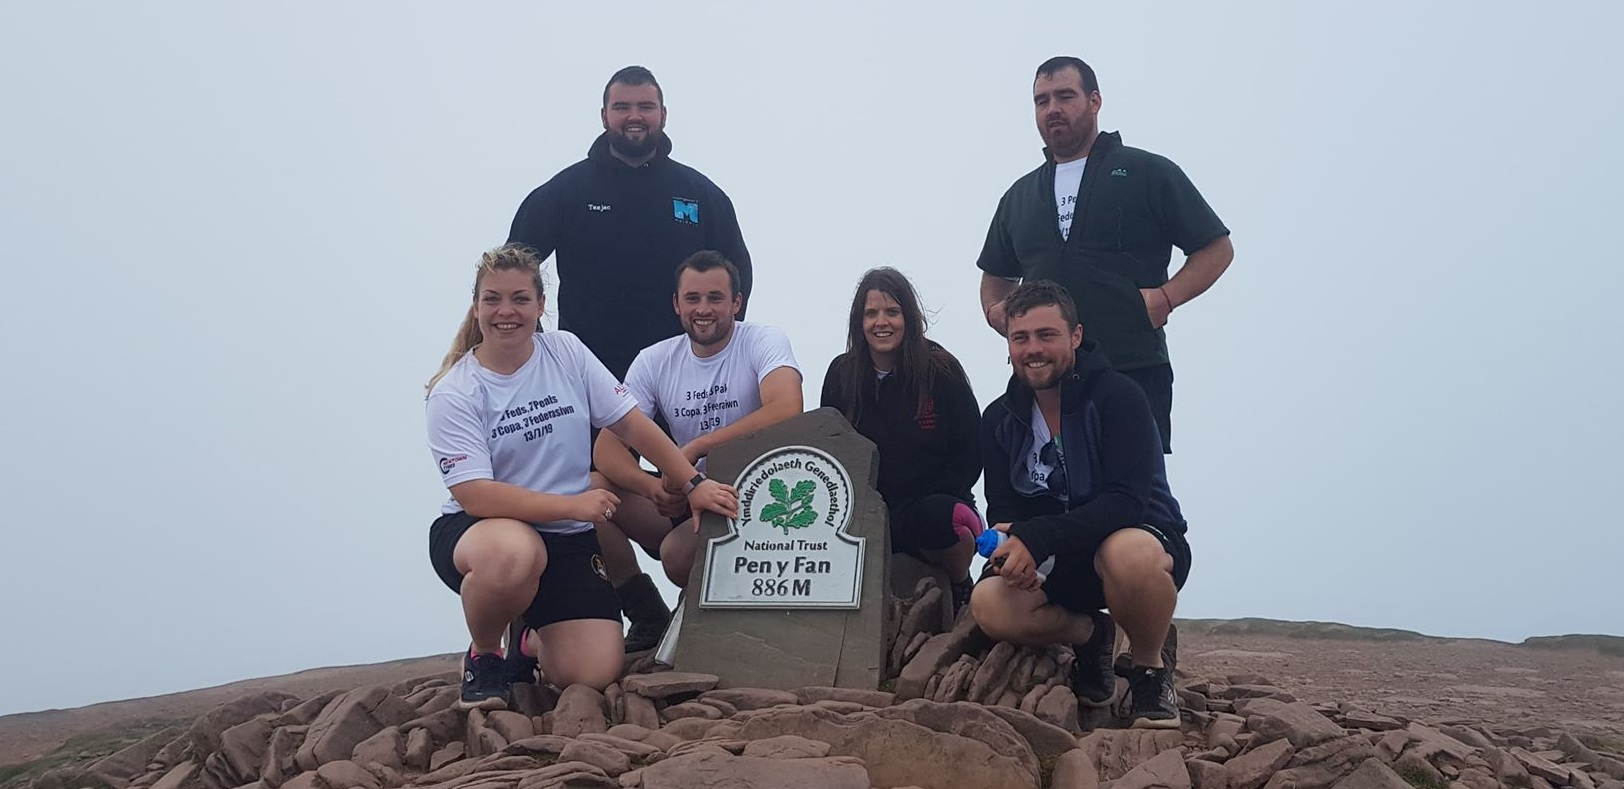 Federation Officials at the top of Pen Y Fan with Wales YFC Chairman Daf Jones.